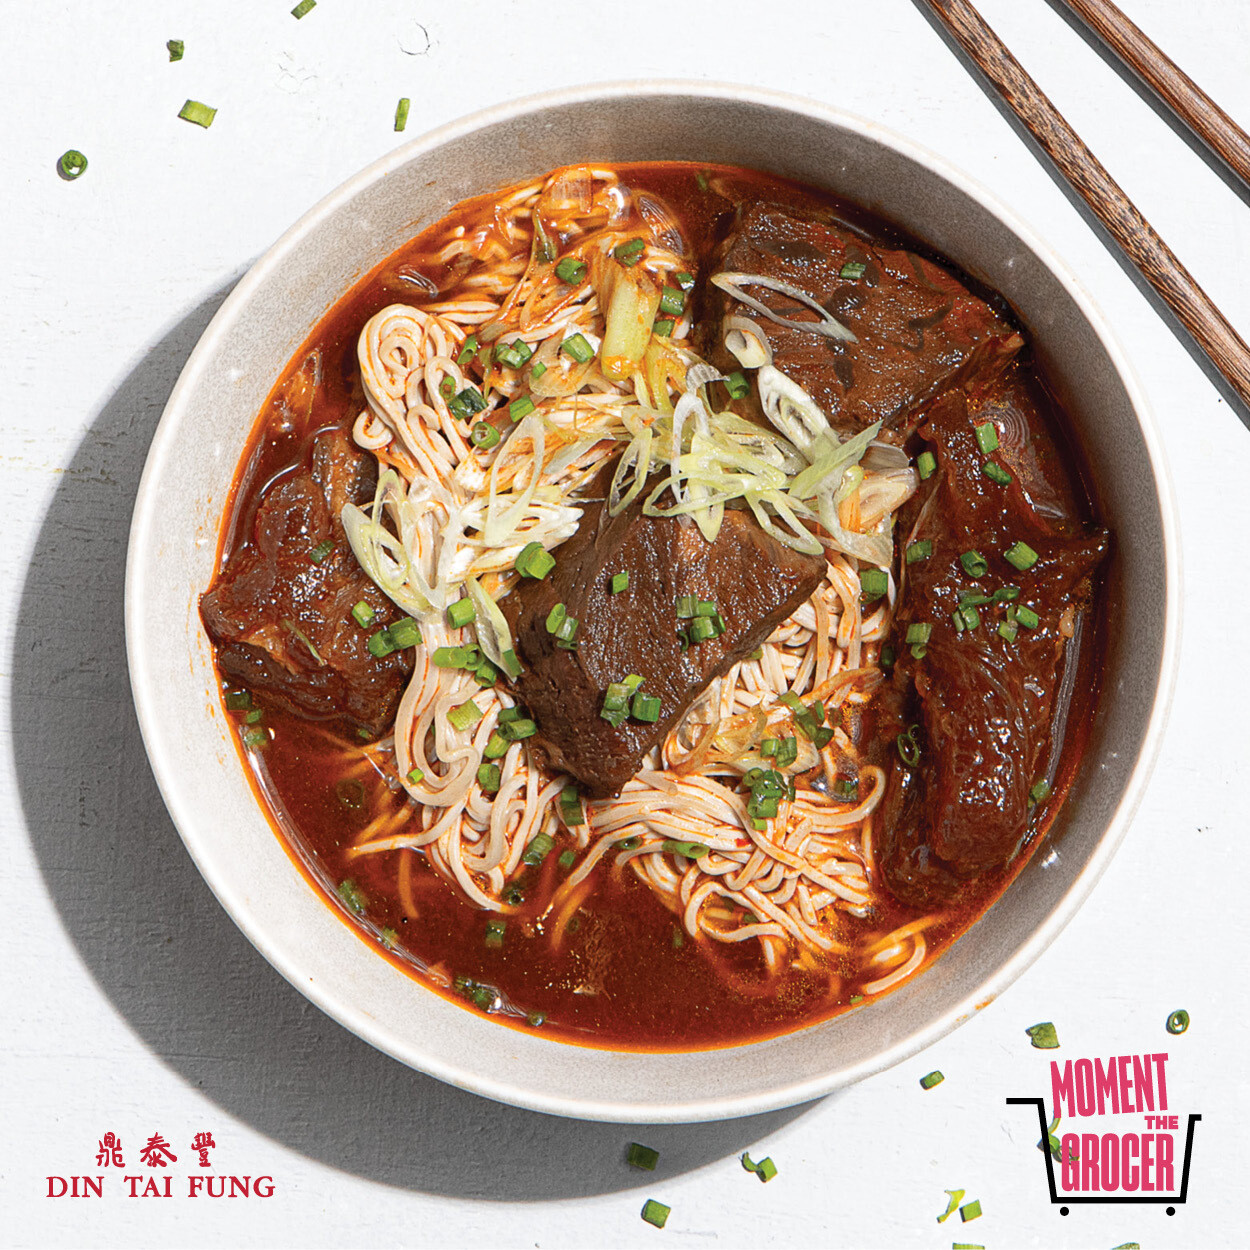 Din Tai Fung Braised Beef Noodle Soup